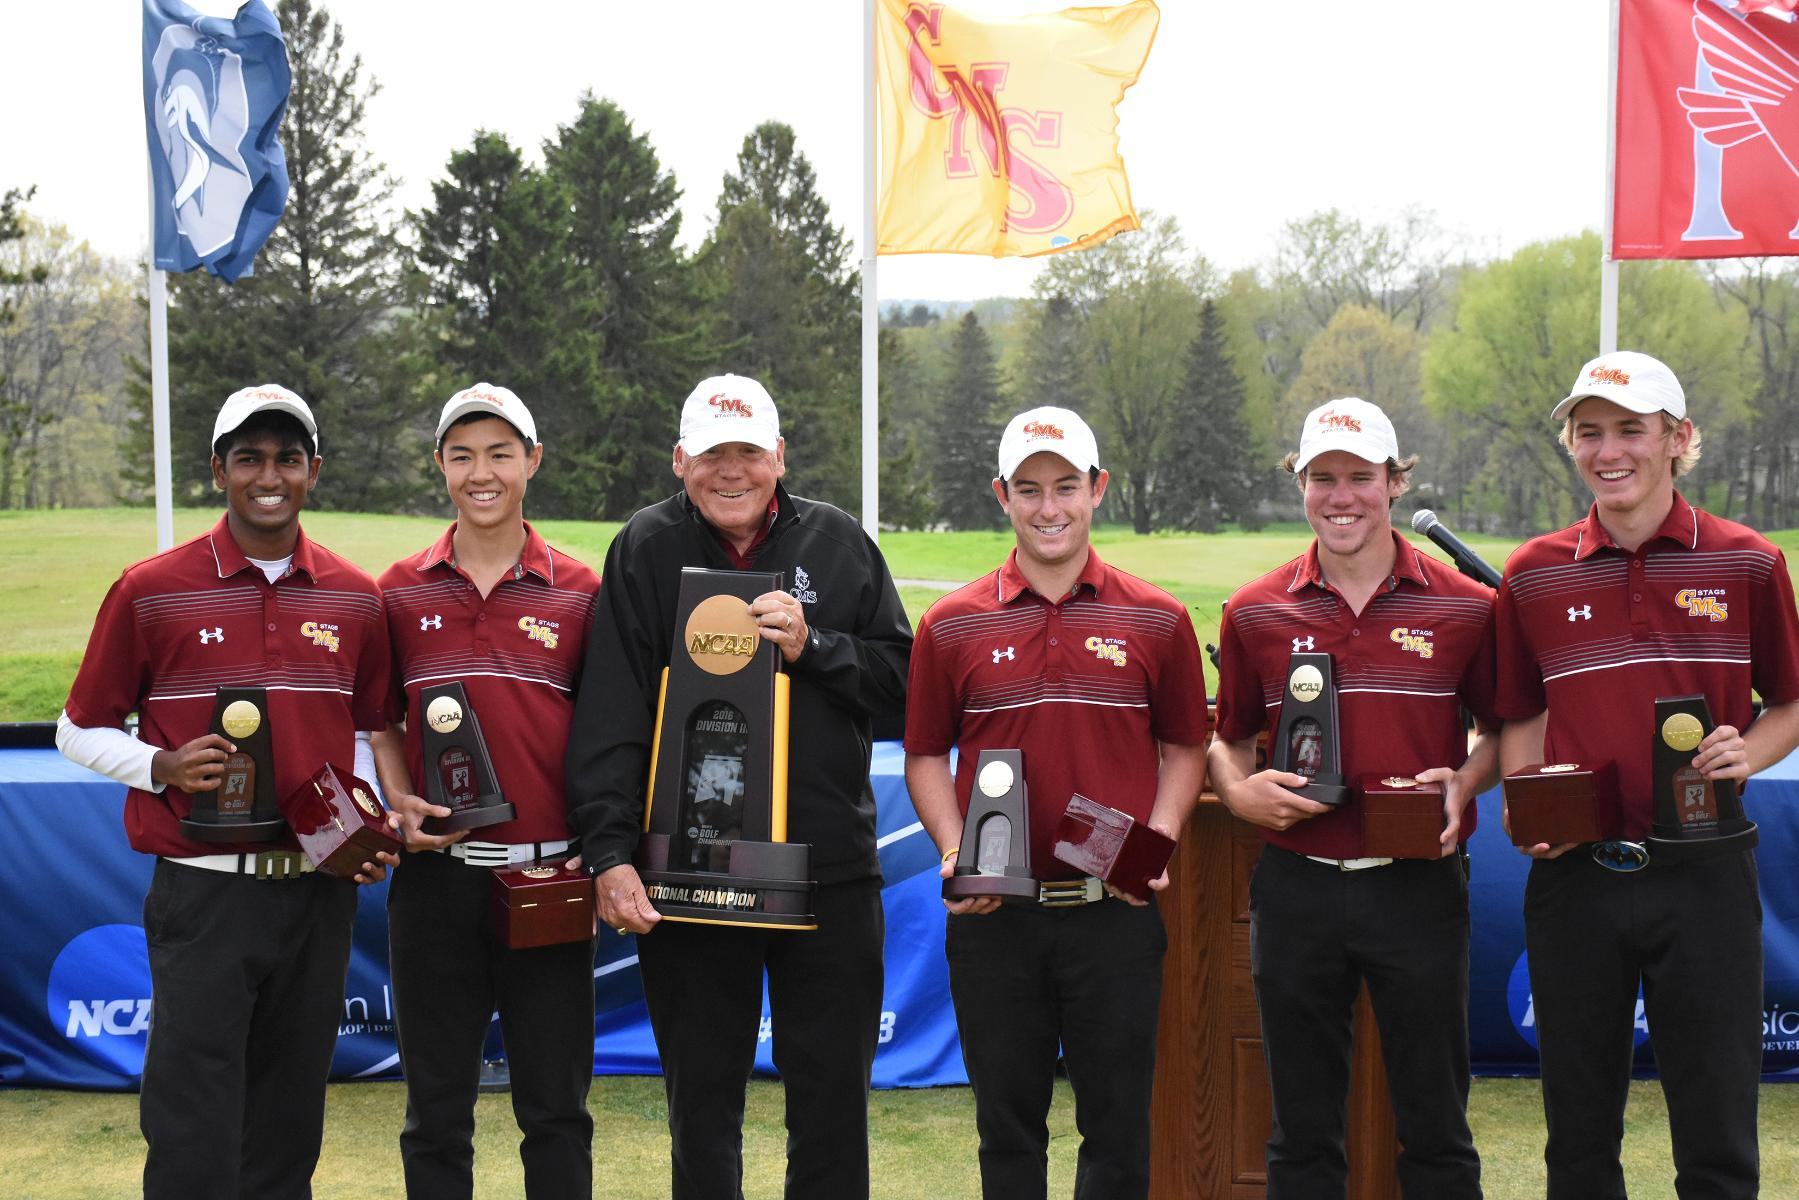 National Champions – CMS Men's Golf wins DIII Championships